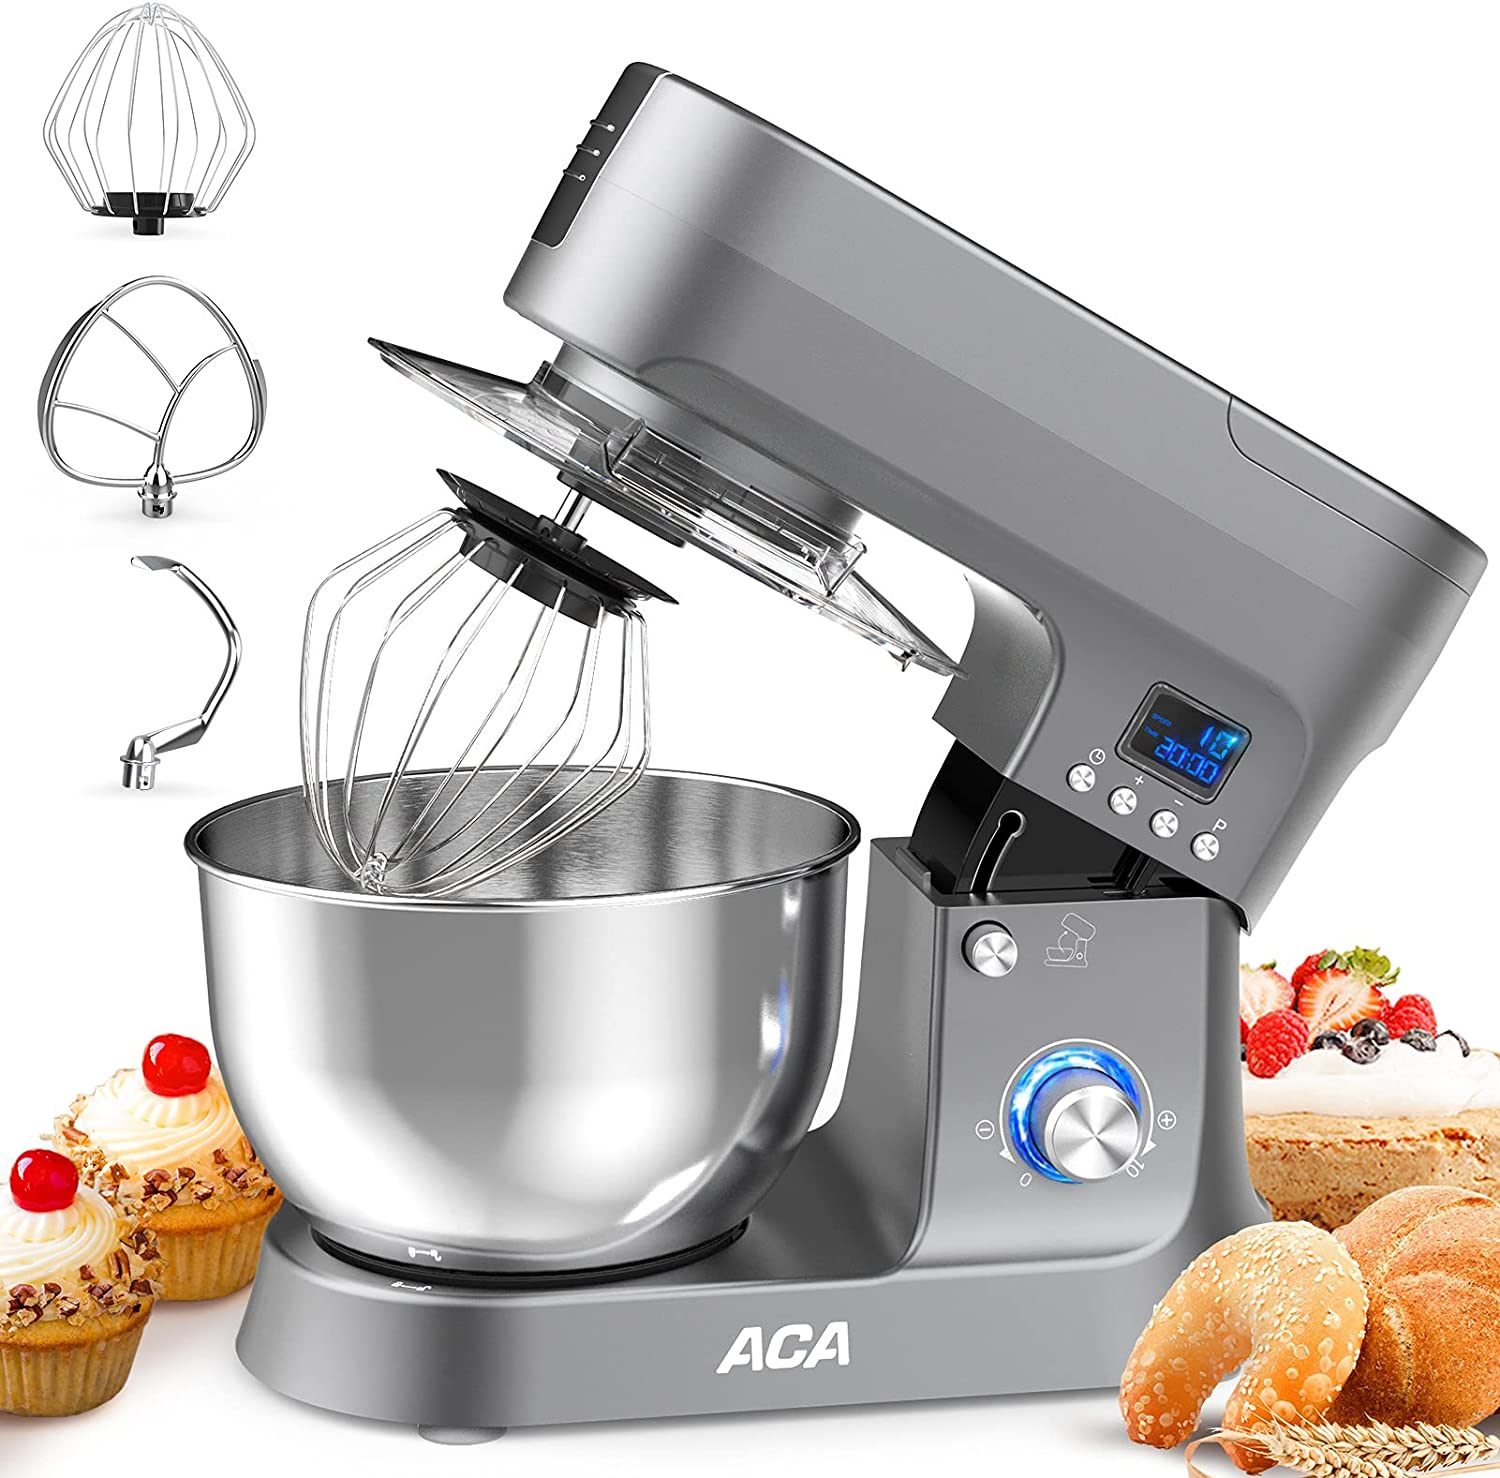 Stand Mixer, ACA 800W 6.5 QT, 20 Min Timing,10 Speed & Pulse Tilt-Head Cake Food Dough Mixer, Electric Kitchen Mixer with Flat Beater, Electric Whisk, Dough Hook 3 Kitchen Mixer Attachments - Grey